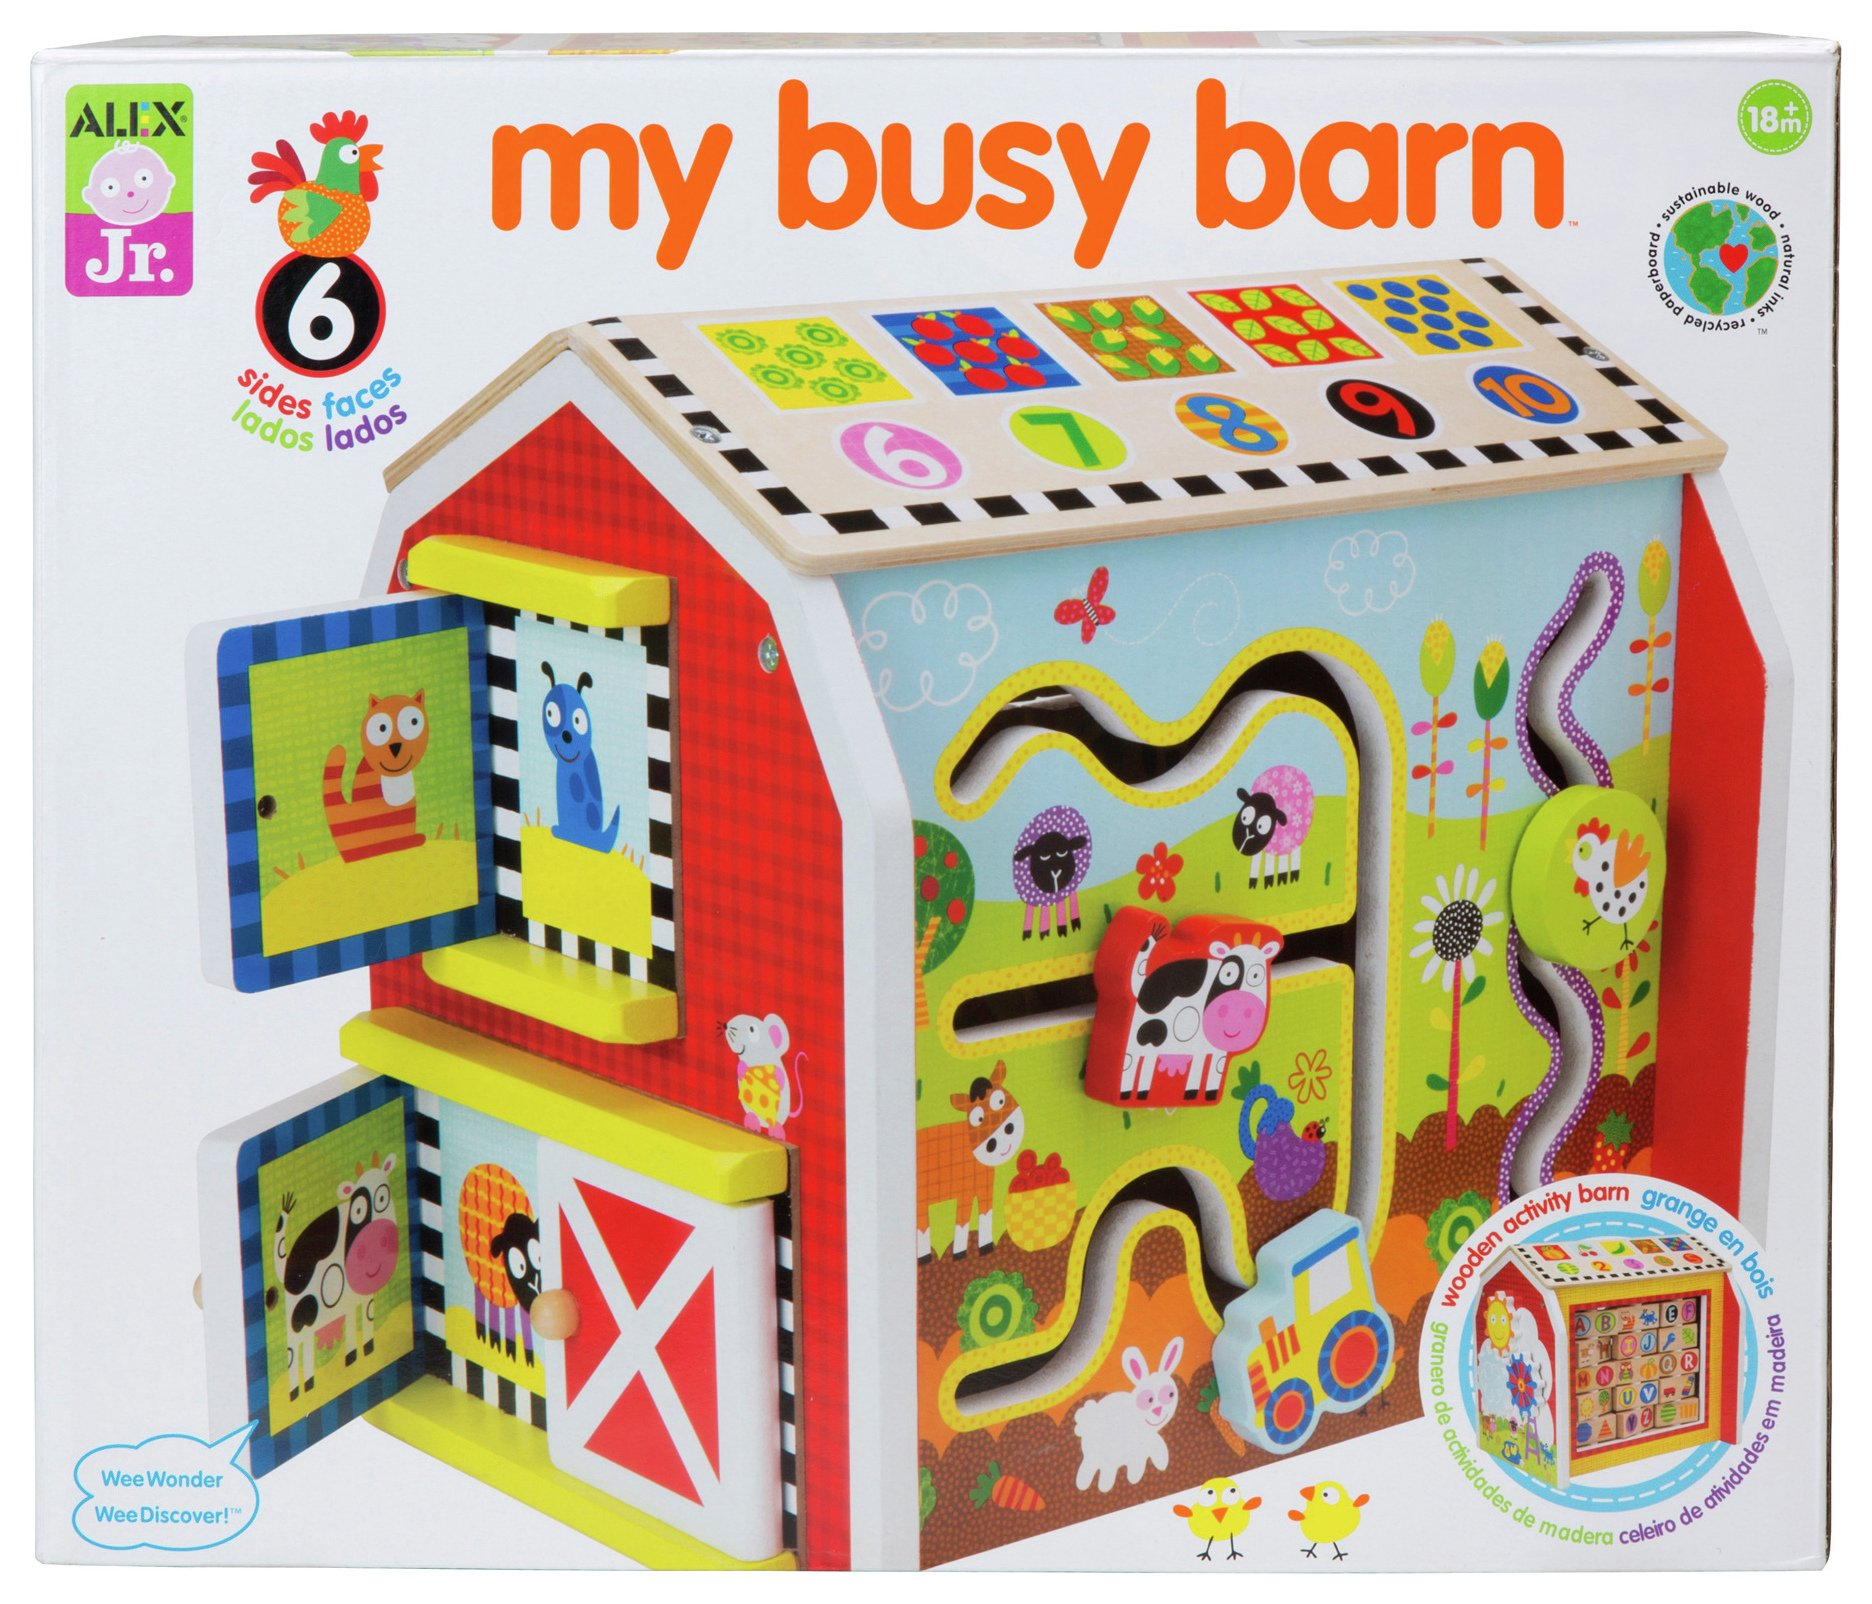 alex-toys-busy-barn